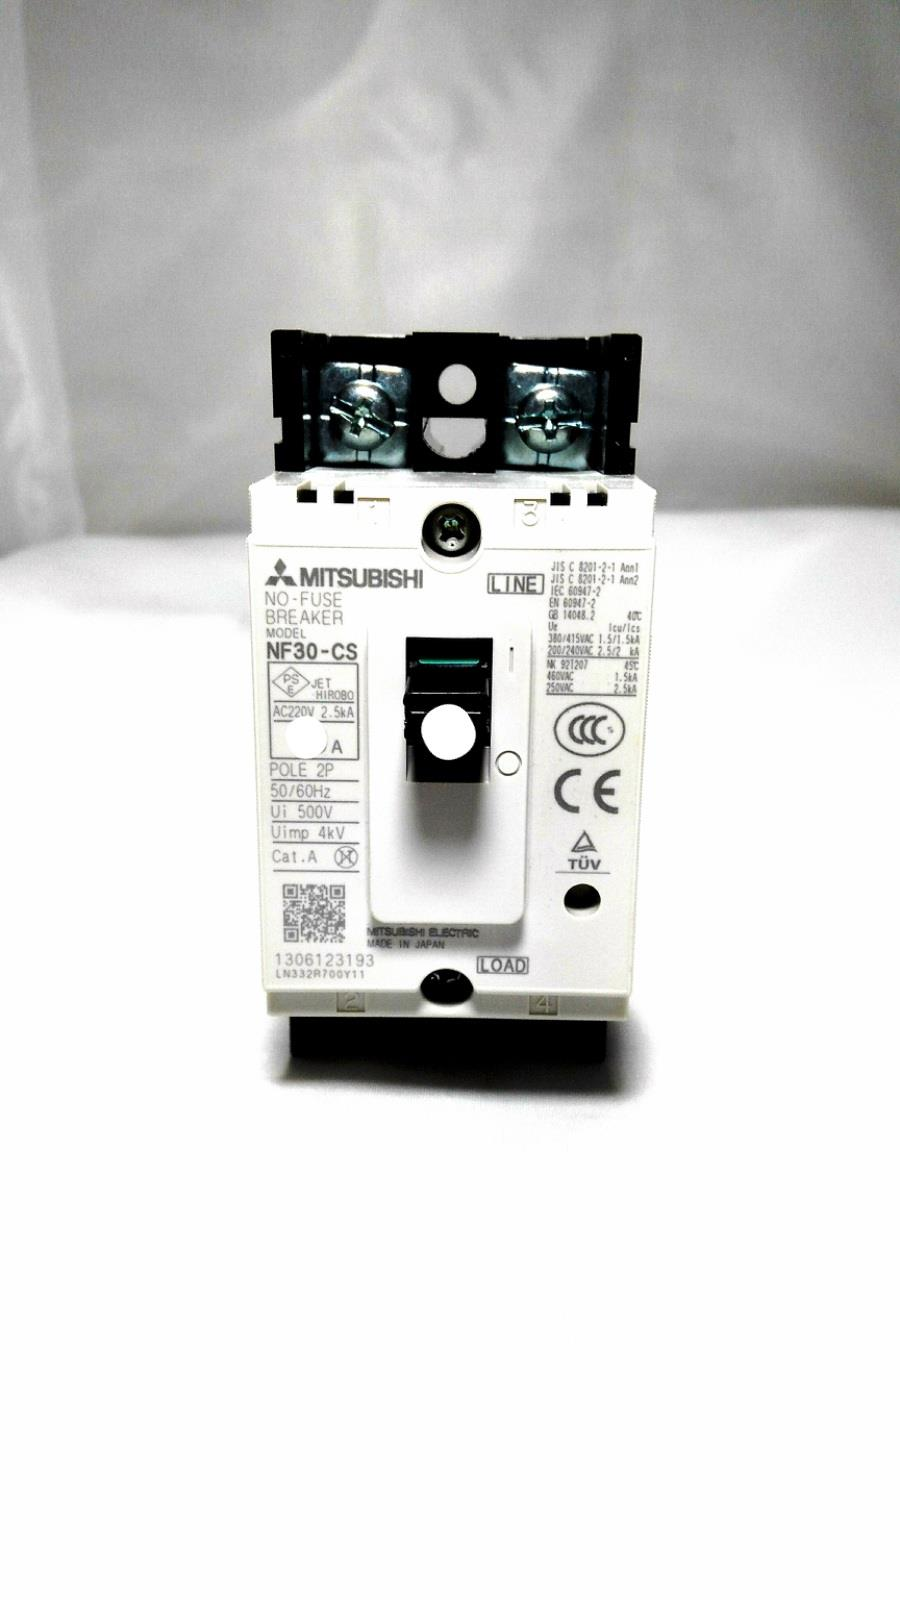 Mitsubishi Electric No Fuse Breaker Car Cs 2p 5a Circuit 5 Amp Nf30 Ebay Nf225 Cb H82 Source Sell Mccb From Indonesia By Hargo Mandiri Cheap Price